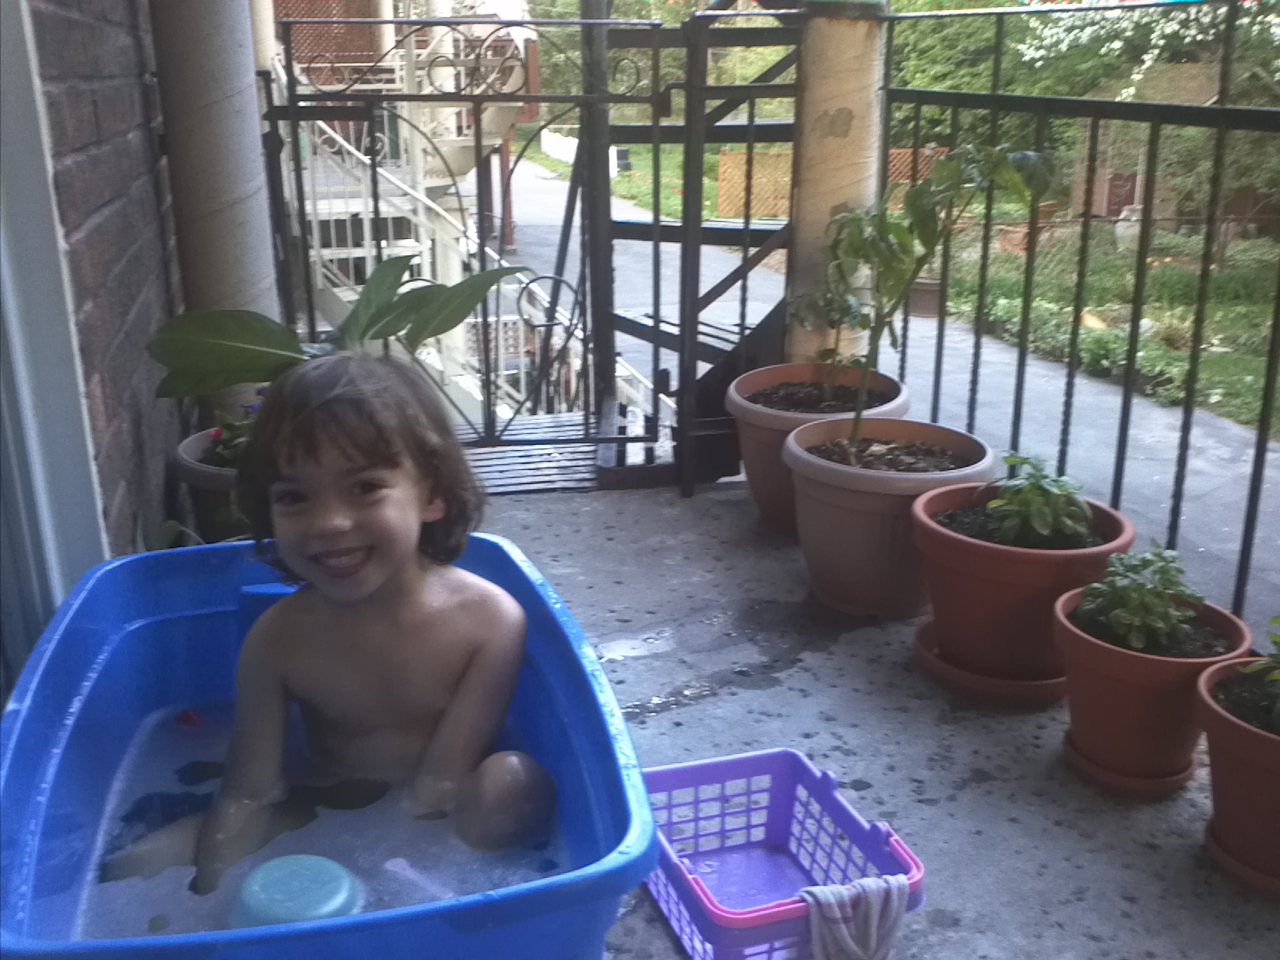 She would only take her bath outside in a big tupperware